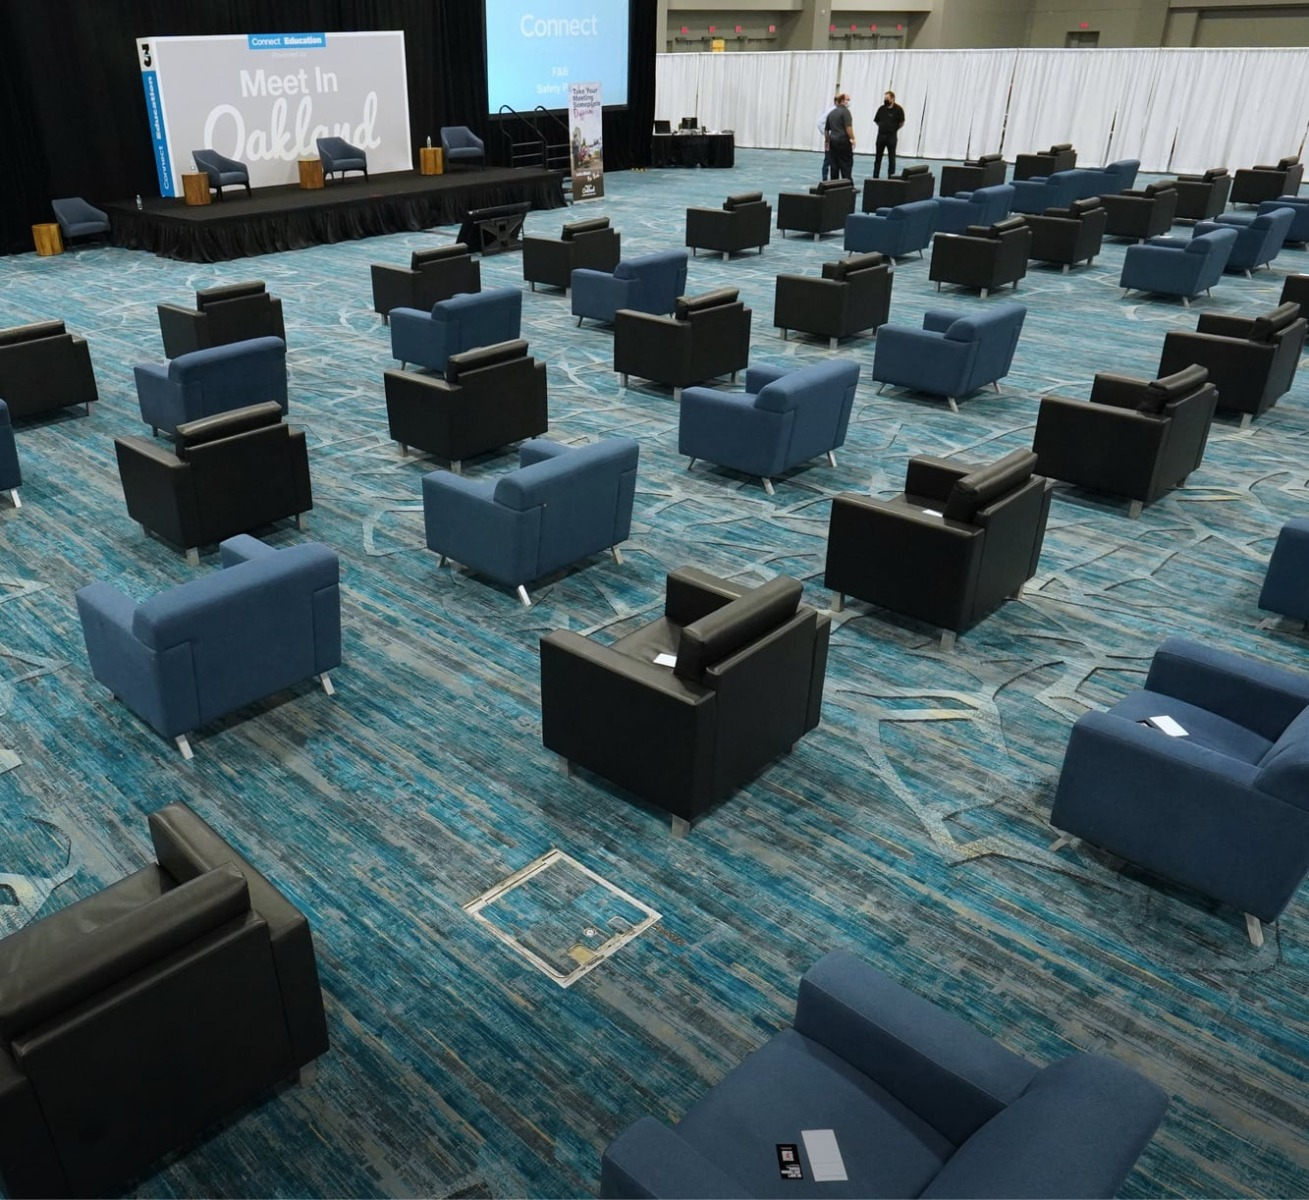 black and blue chairs in socially distanced general sesion